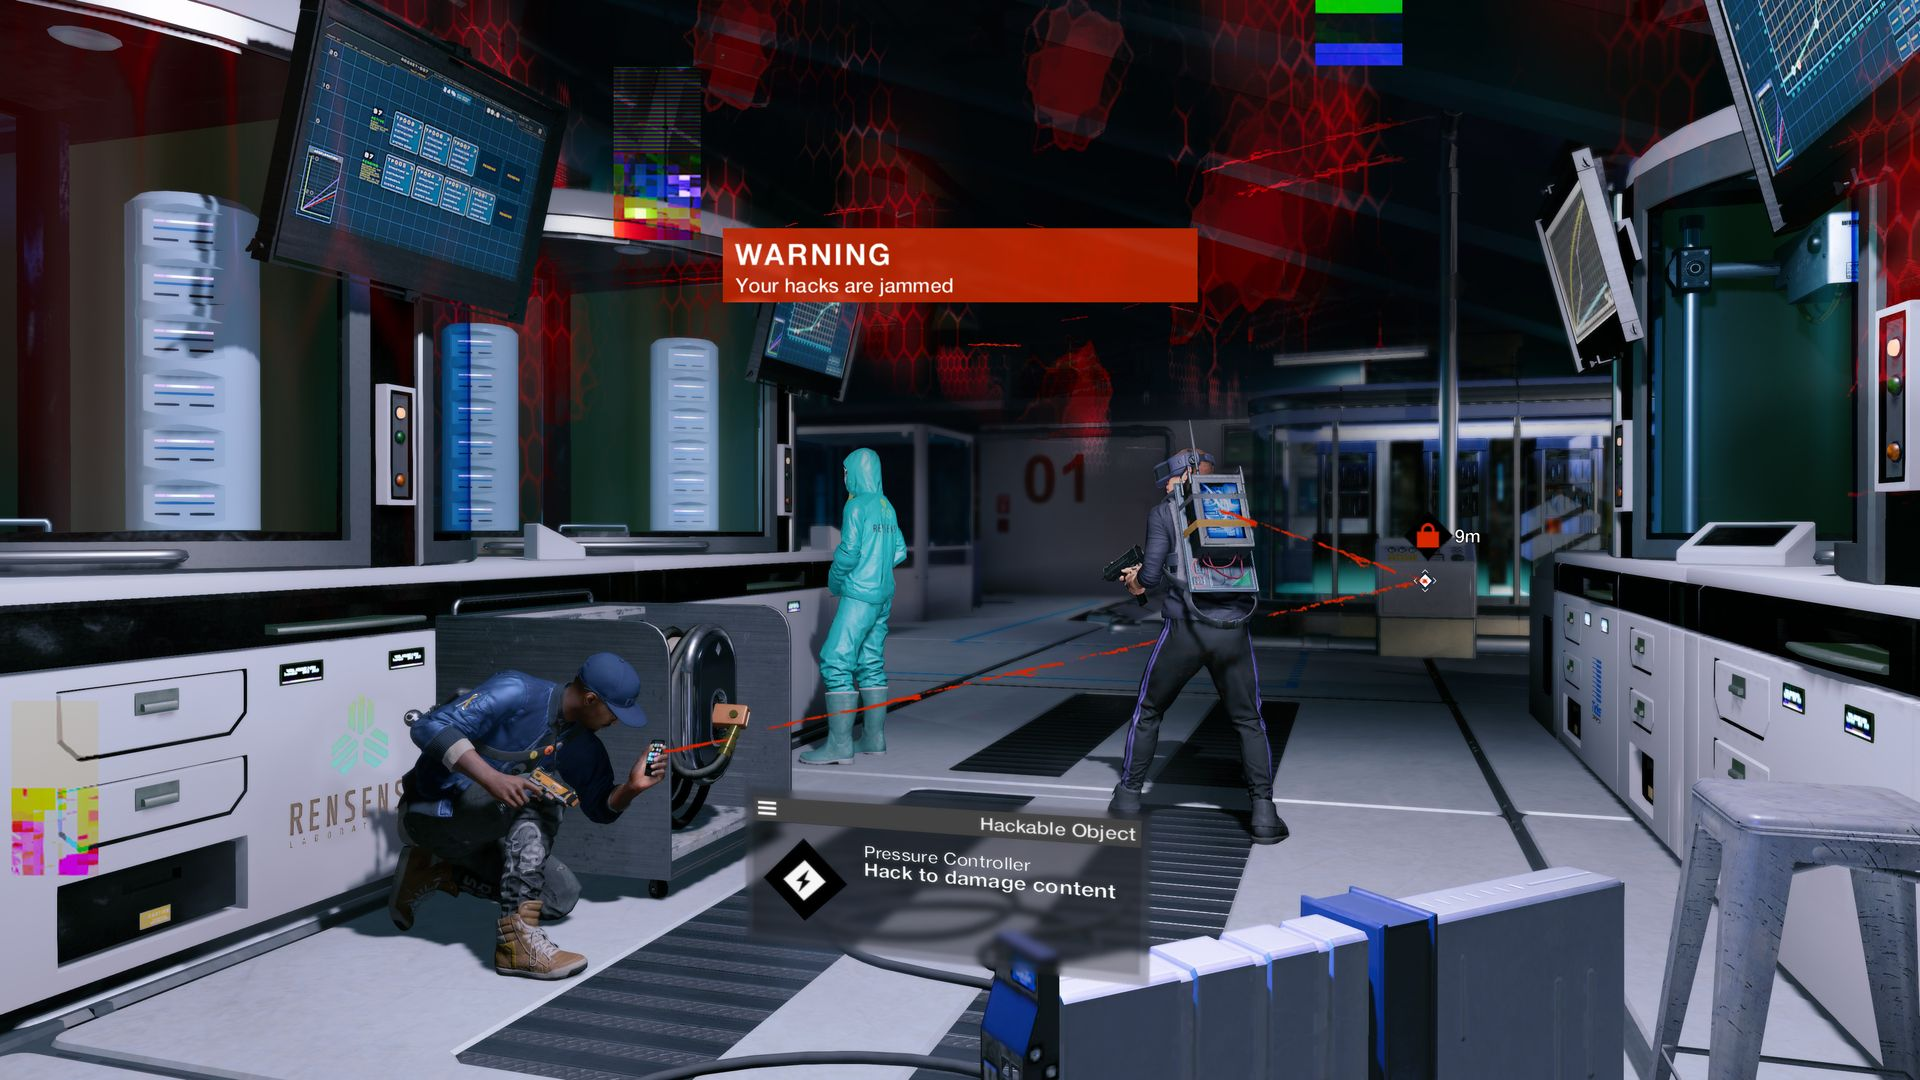 Watch Dogs 2 Human Conditions Out On February 21 For Ps4 Capsule Sony Game Will Be A Timed Playstation 4 Exclusive Owners Can Get Started The Dlc 21st While Pc And Xbox One